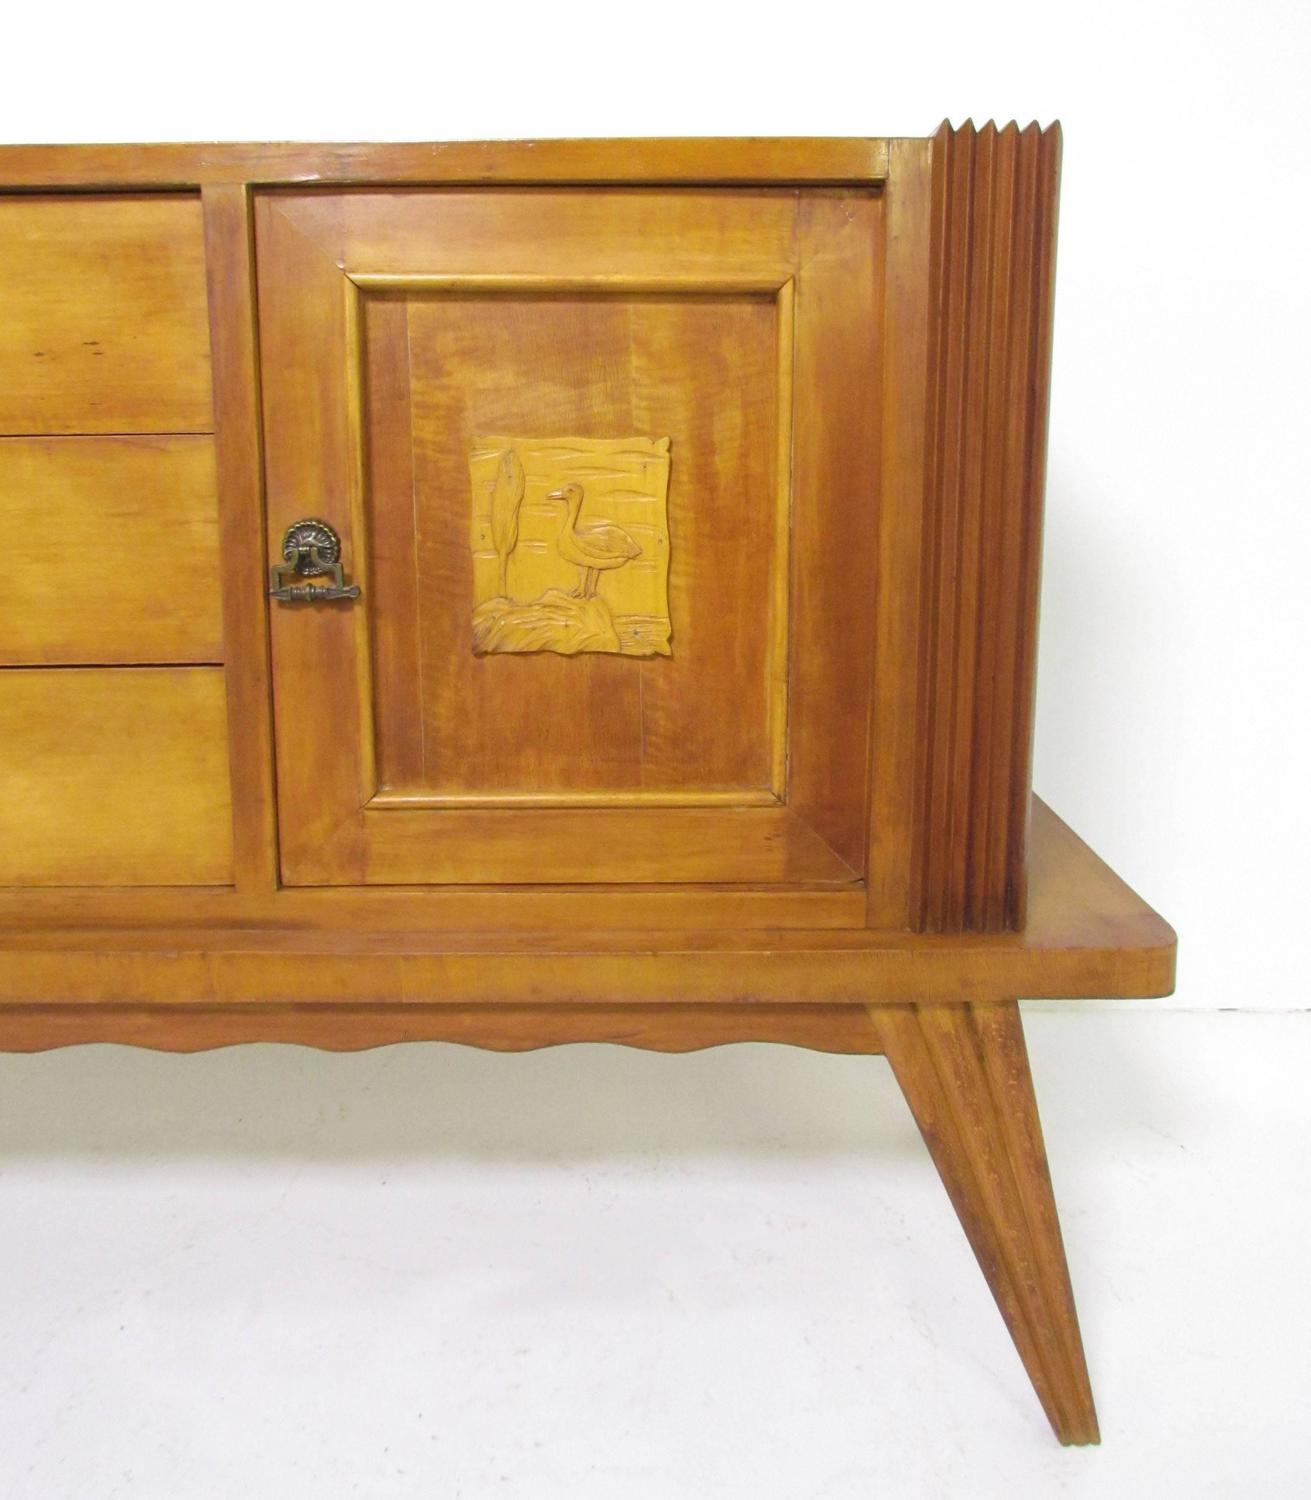 italian art deco sideboard with hand carved decorative panels circa 1940s for sale at 1stdibs. Black Bedroom Furniture Sets. Home Design Ideas